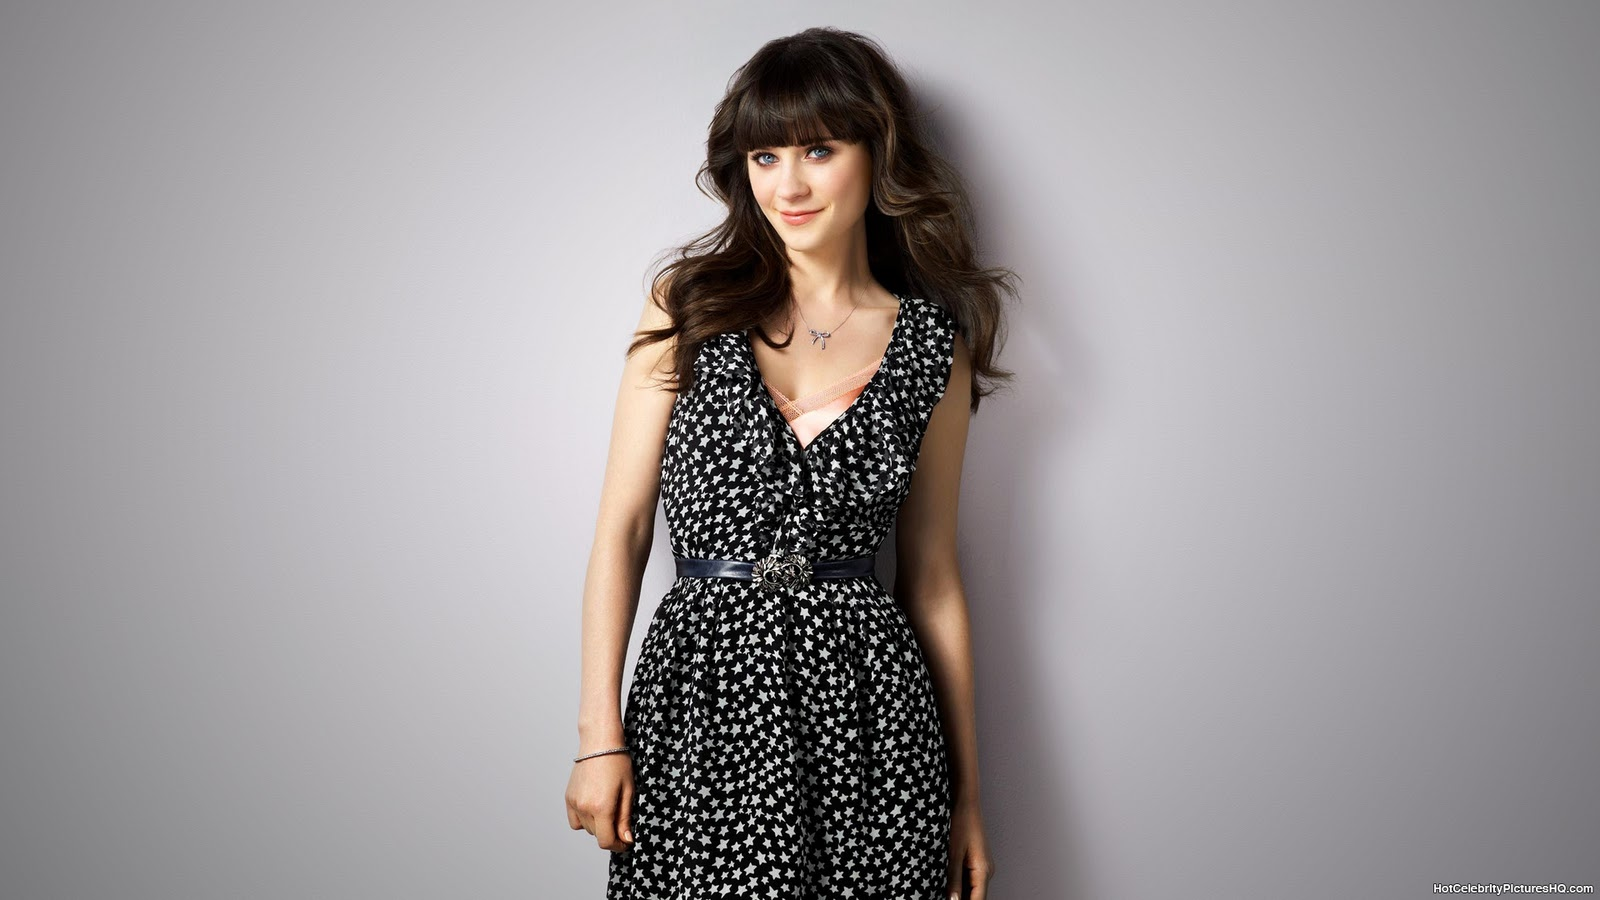 zooey deschanel hd wallpapers 2011 all hollywood stars